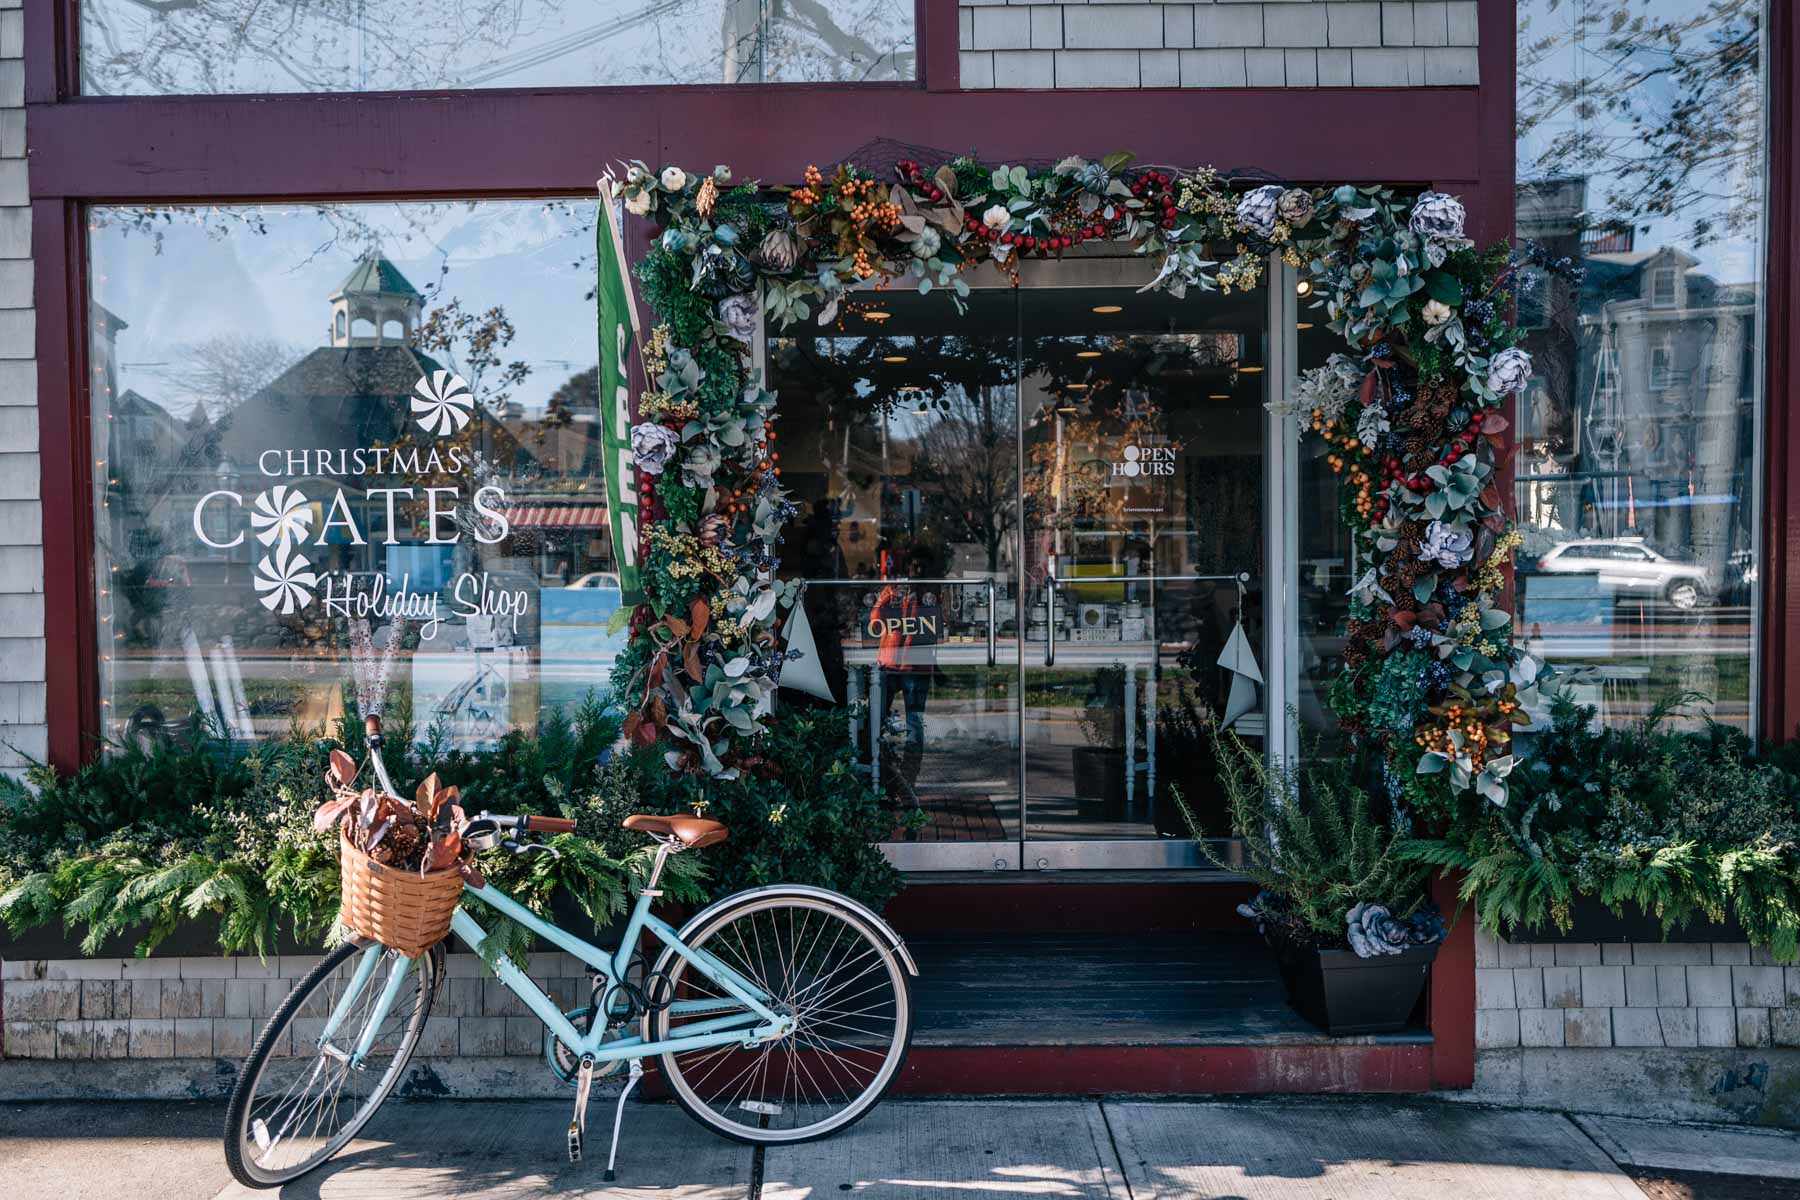 Jess Ann Kirby shares what to do in Newport, Rhode Island for the holidays, like visit Kristen Coates shop